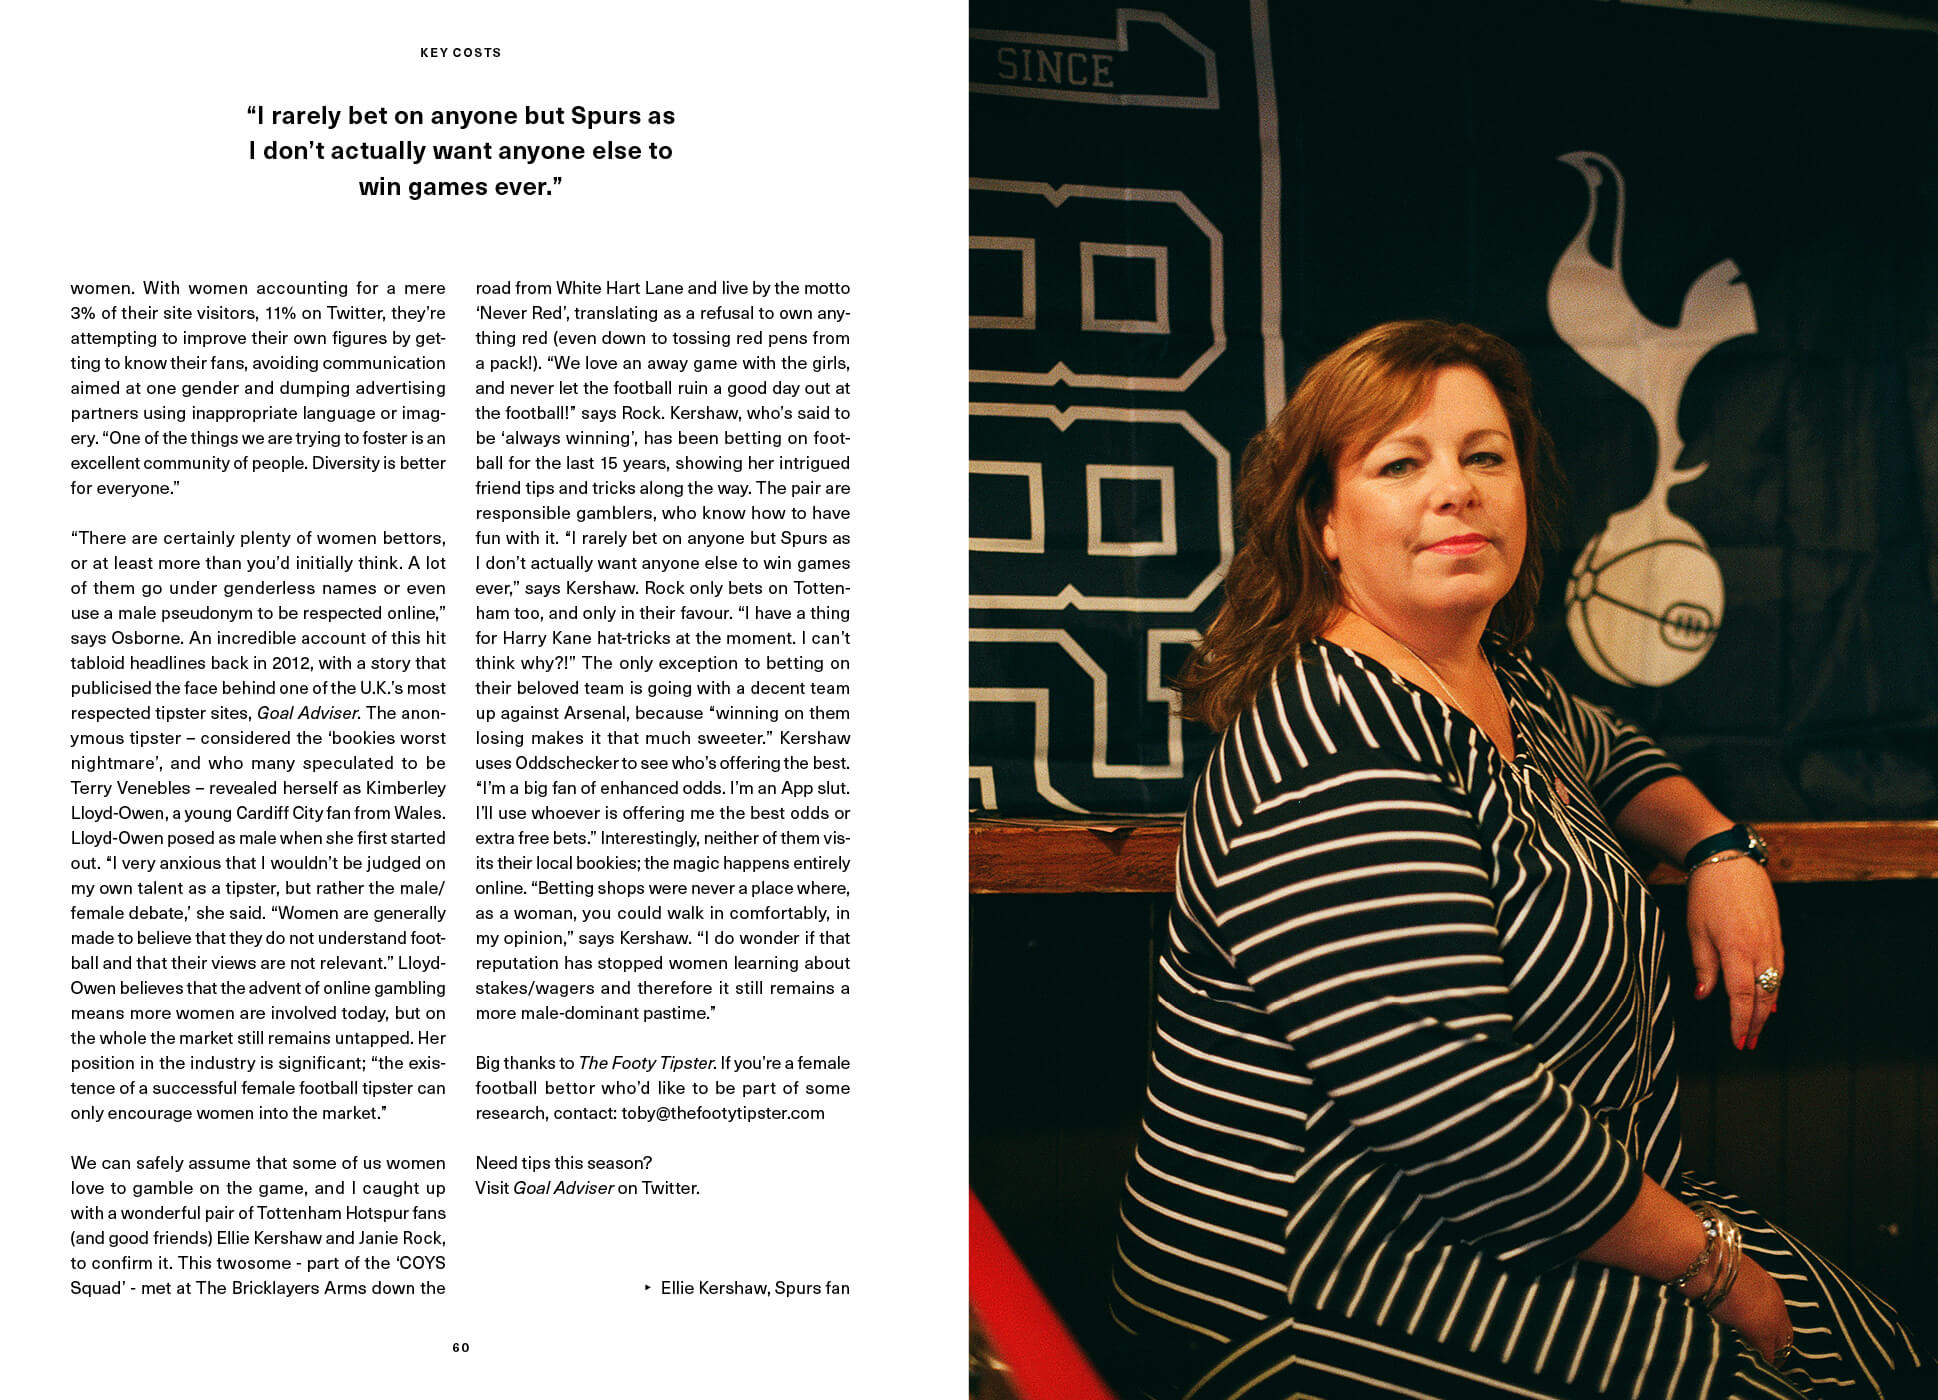 Third page of Women gamble on the game SEASON interview